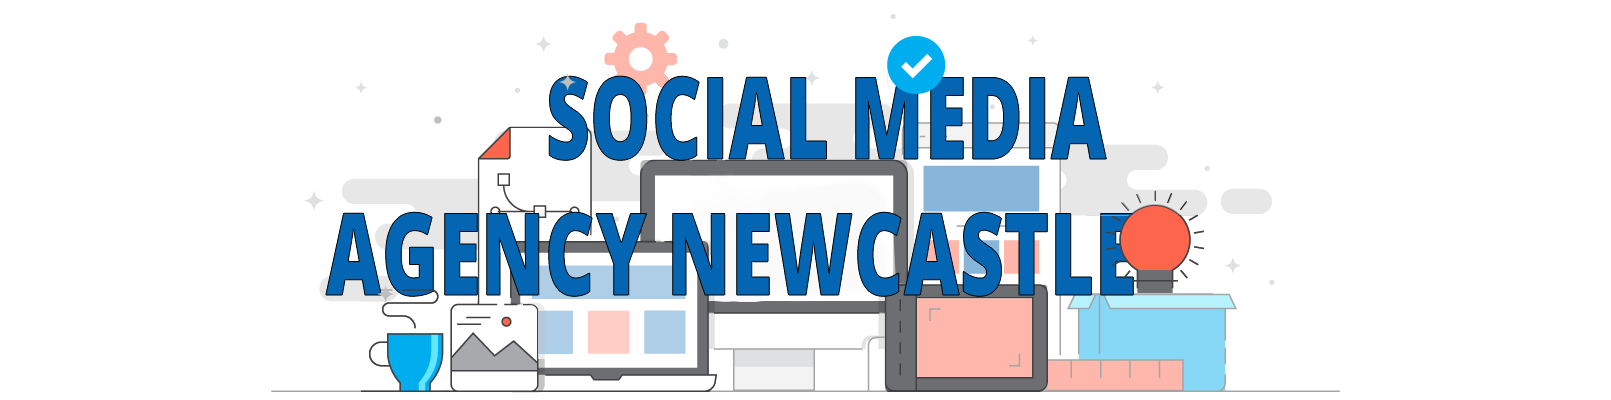 social media agency in newcastle to increase engagements